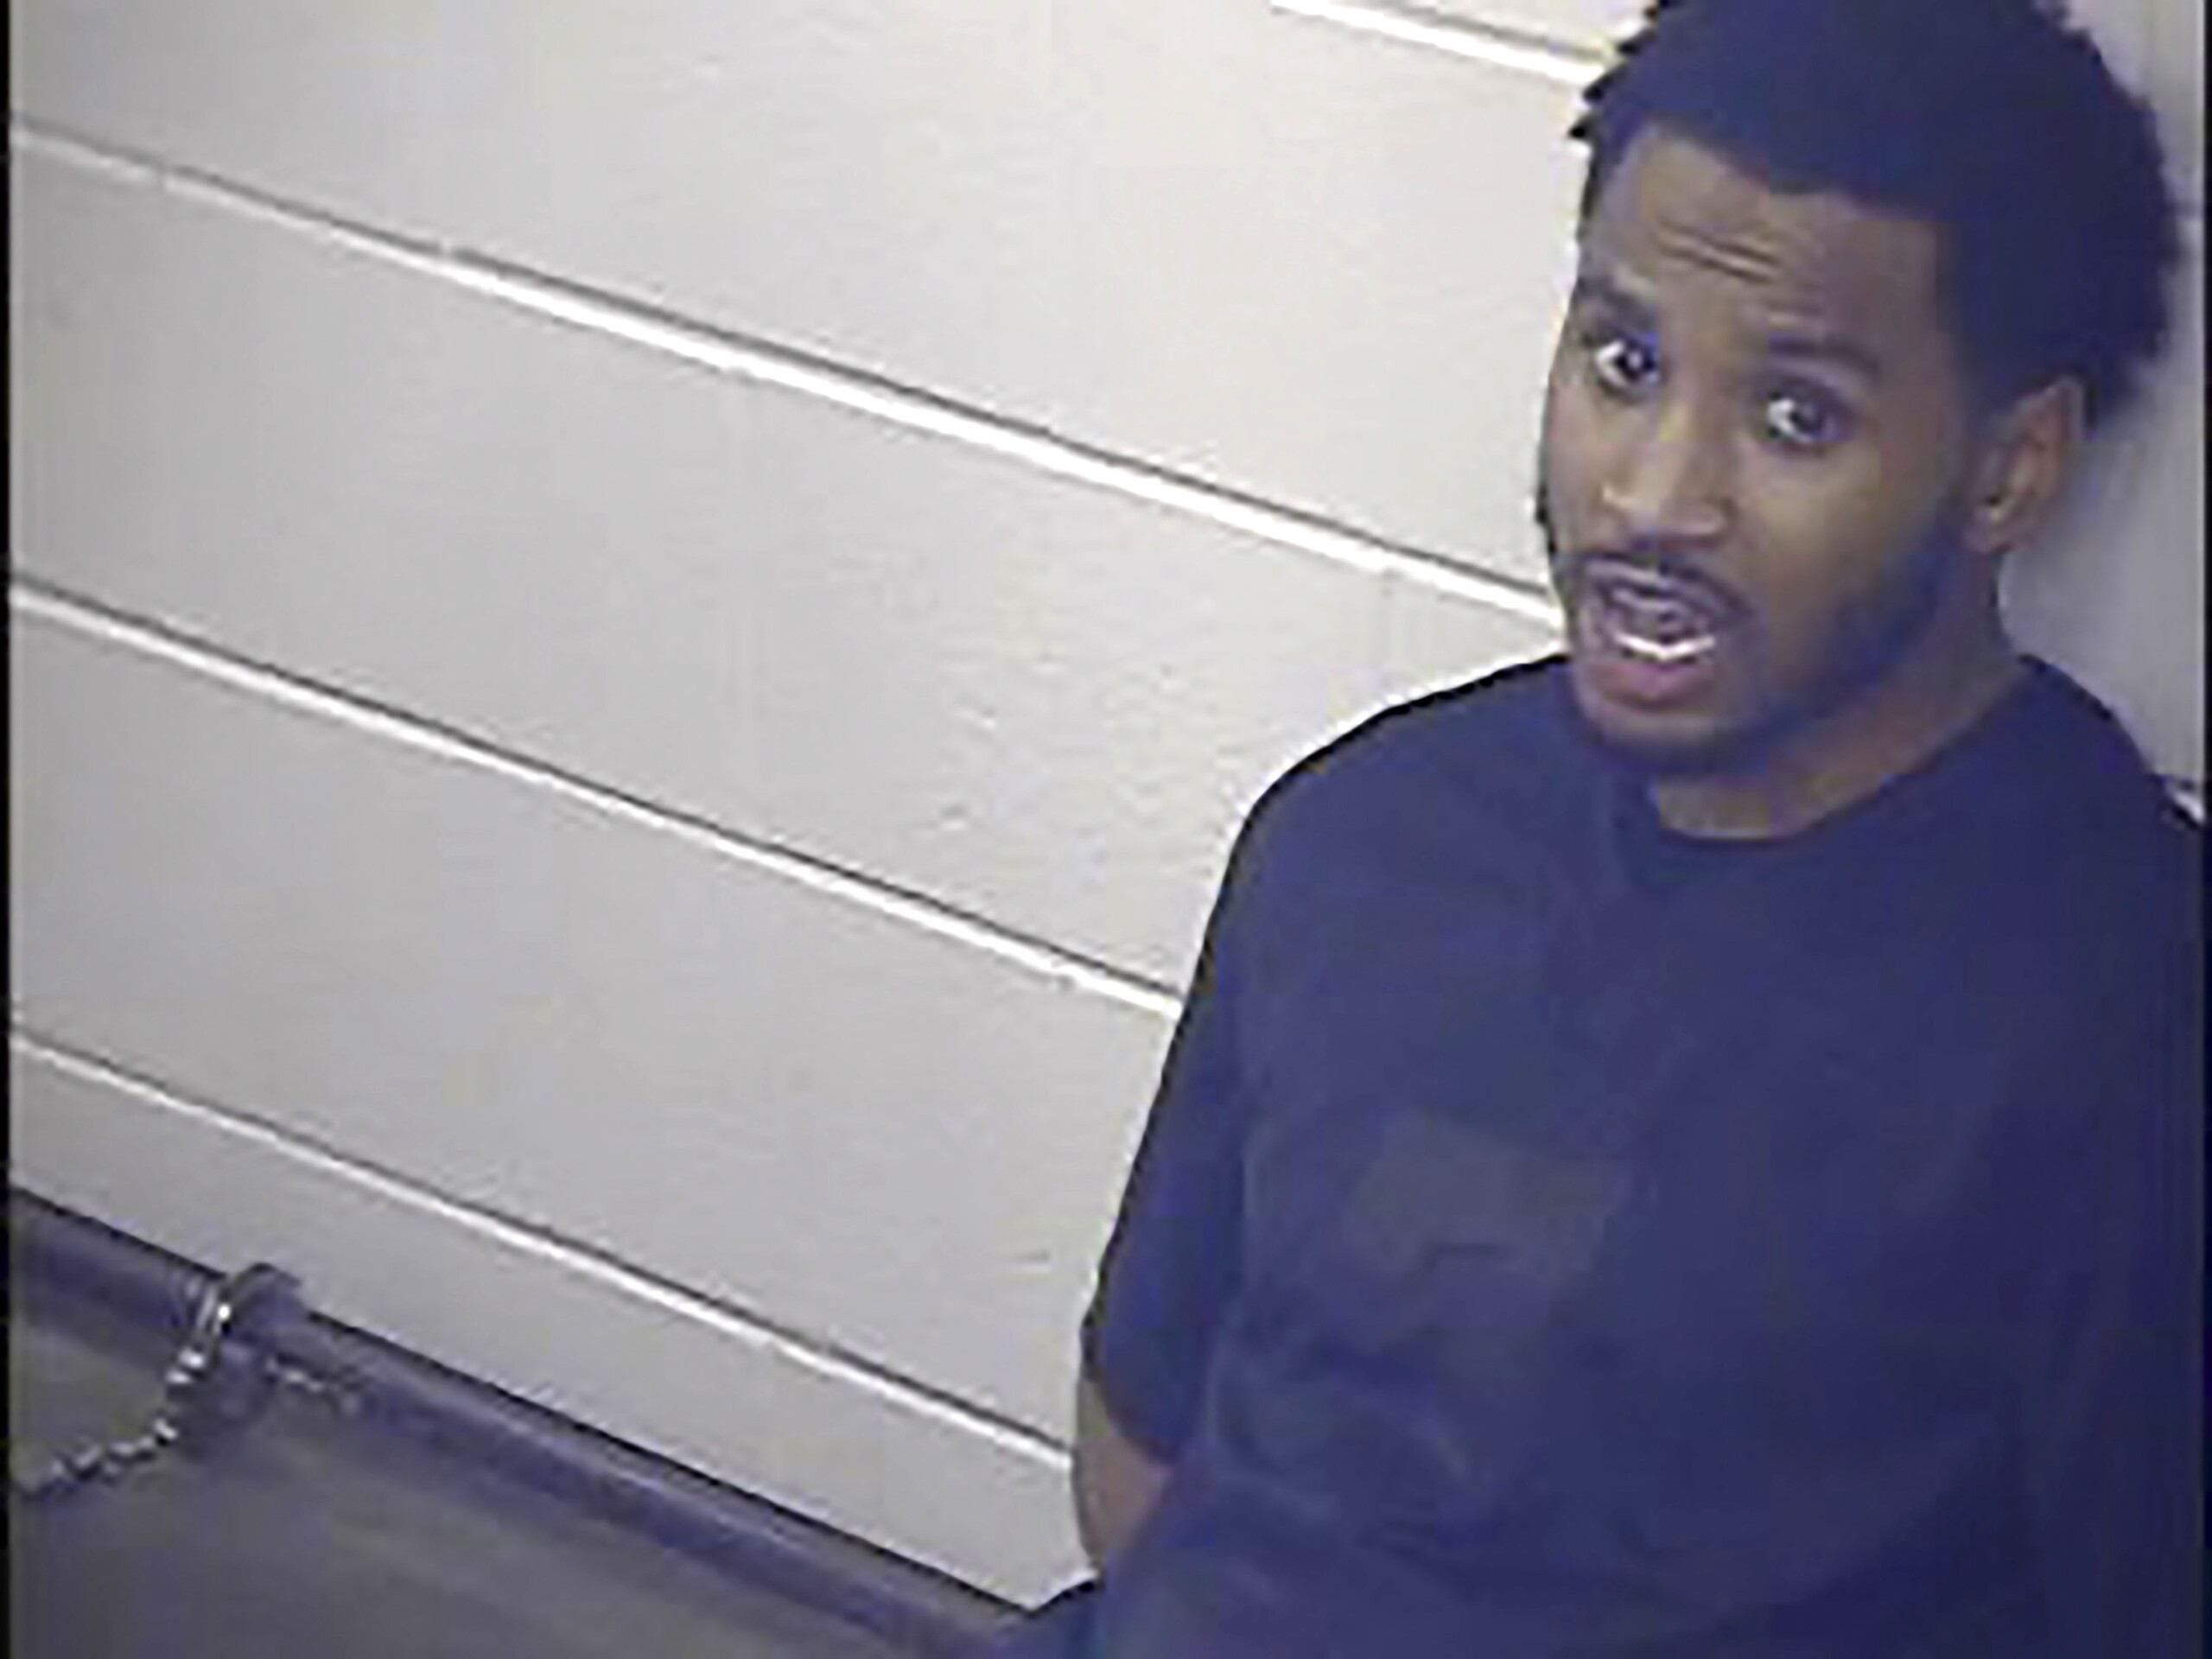 R&B artist Trey Songz arrested at AFC Championship game - WISH-TV